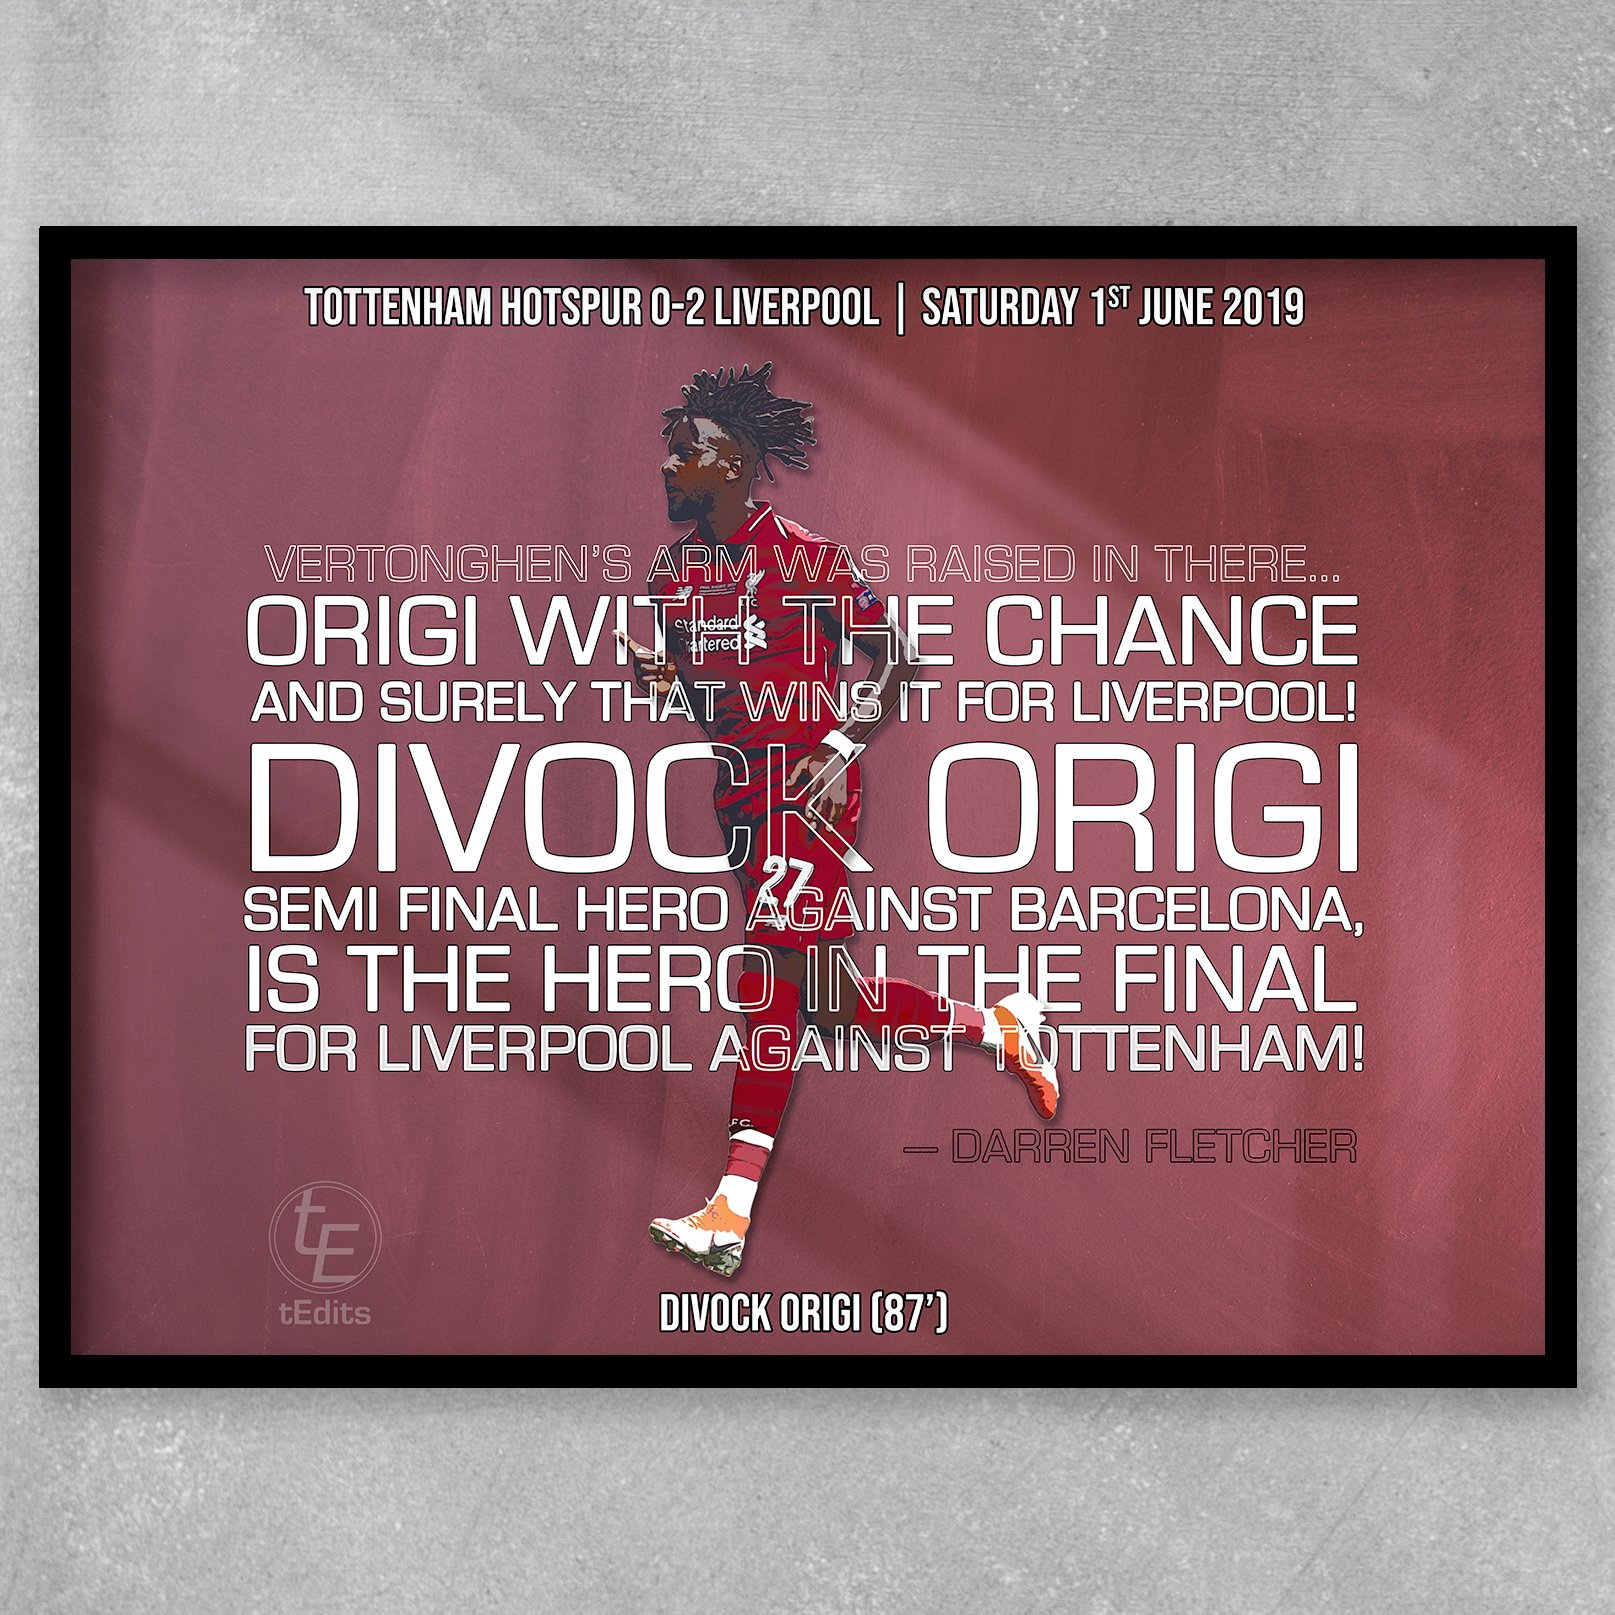 Divock Origi vs Tottenham, 2019 | Football Moments